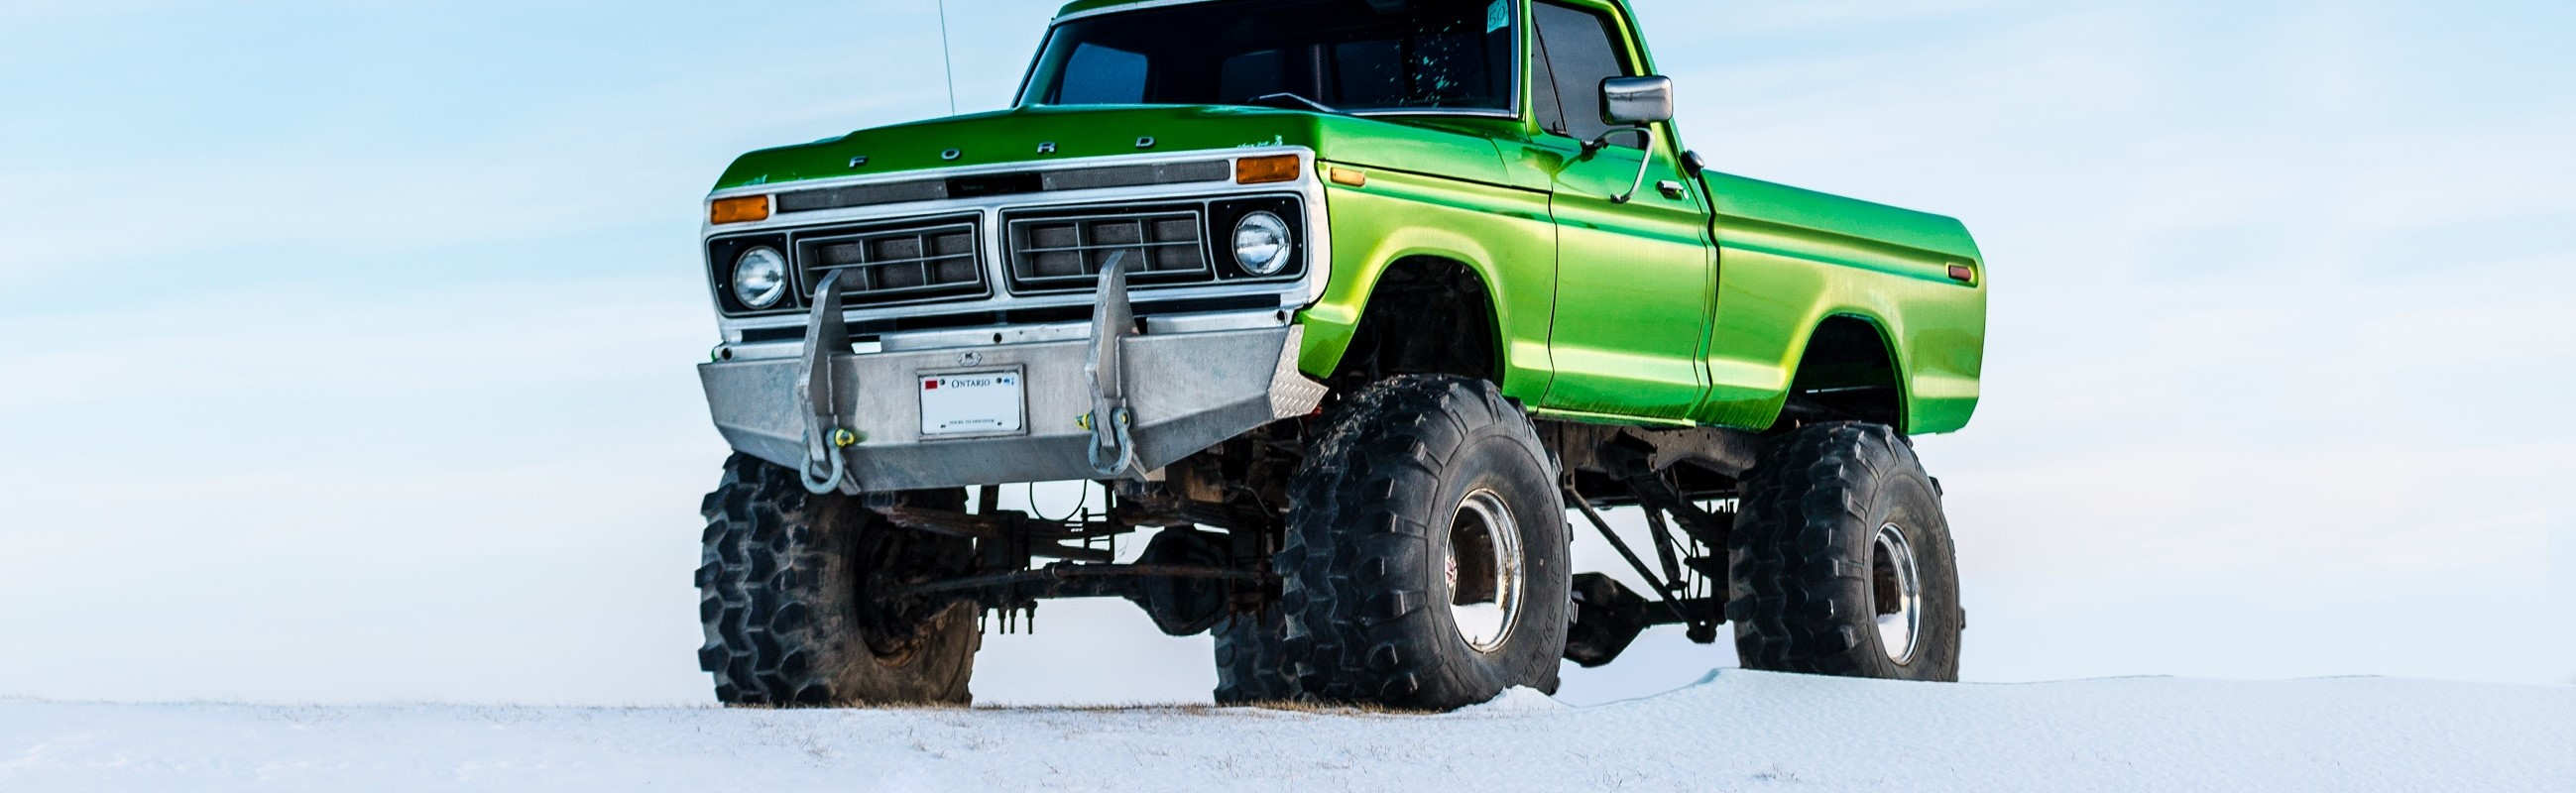 Green Monster Truck   Breast Cancer Car Donations